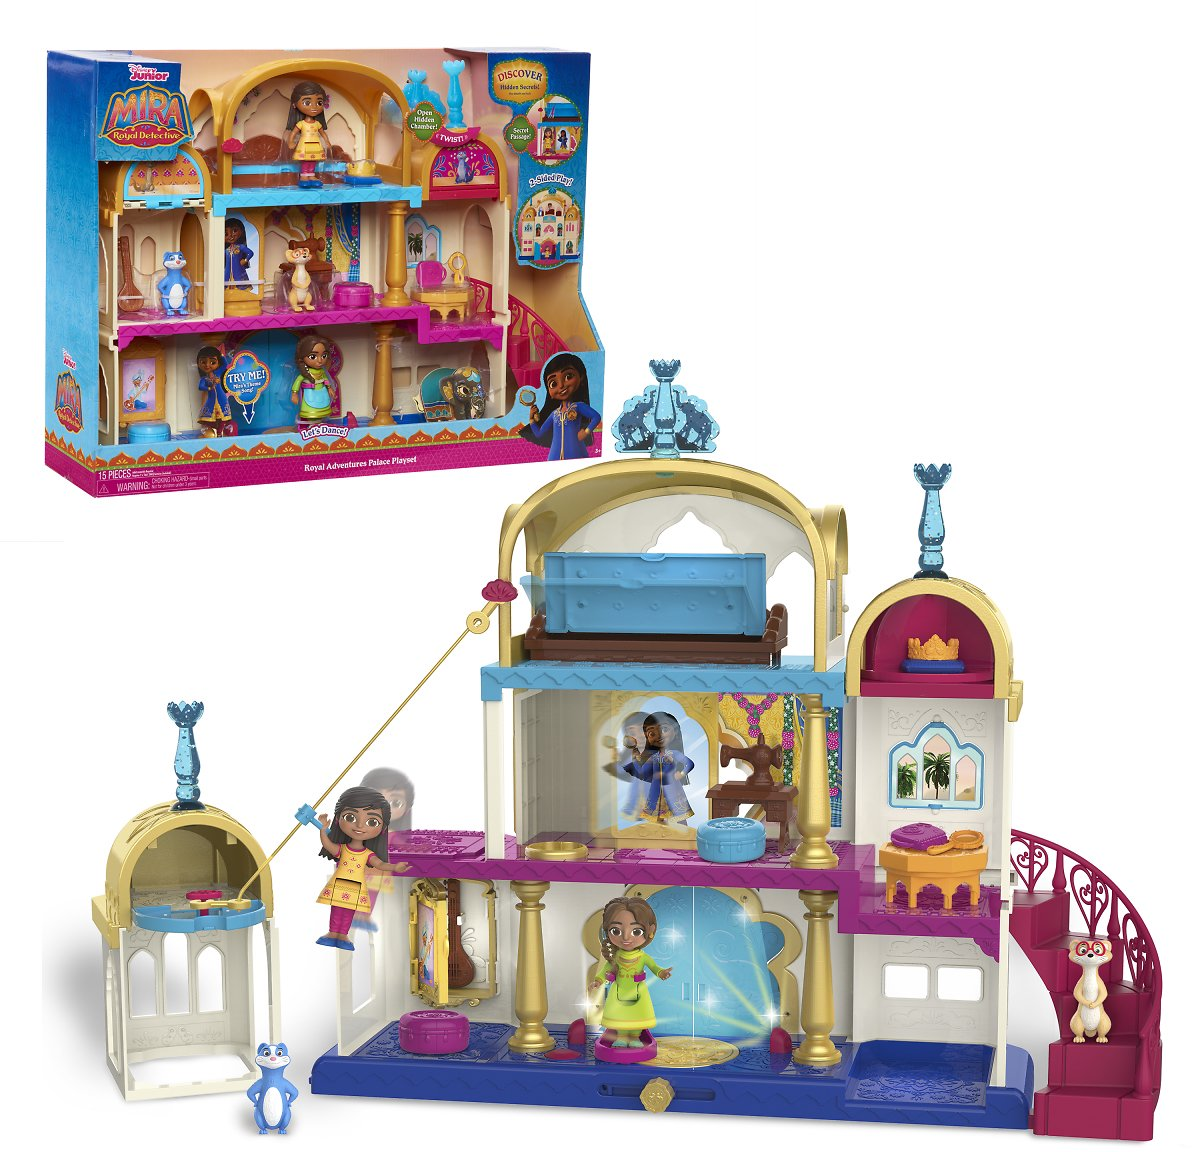 Disney Junior Royal Adventures Palace Doll Playset, 16 Pieces Included